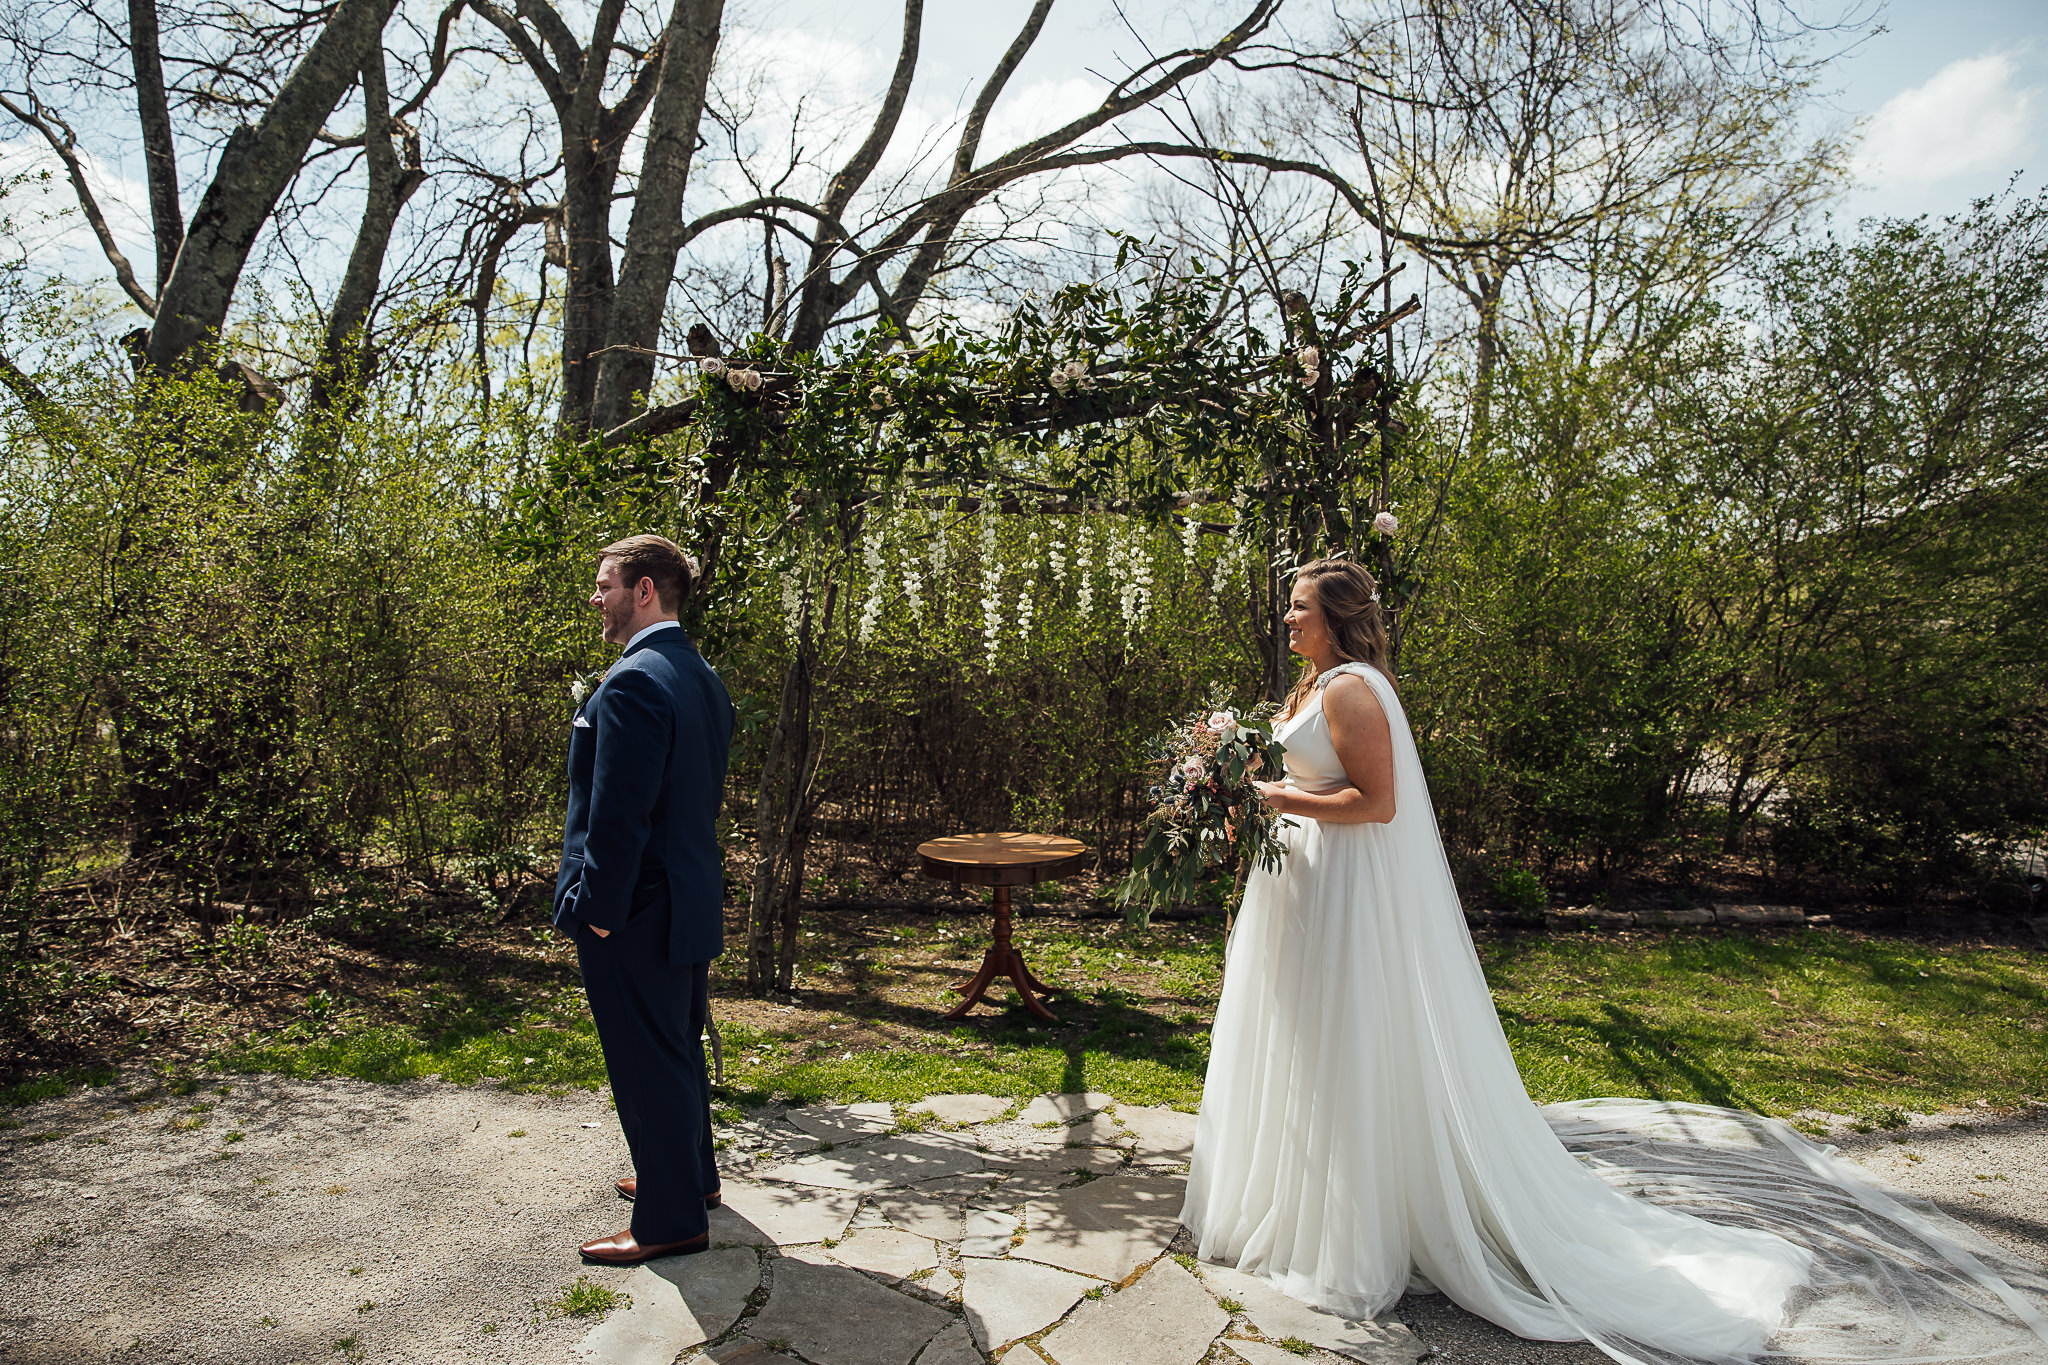 memphis-wedding-photographer-meadow-hill-farms-thewarmtharoundyou (3 of 93).jpg